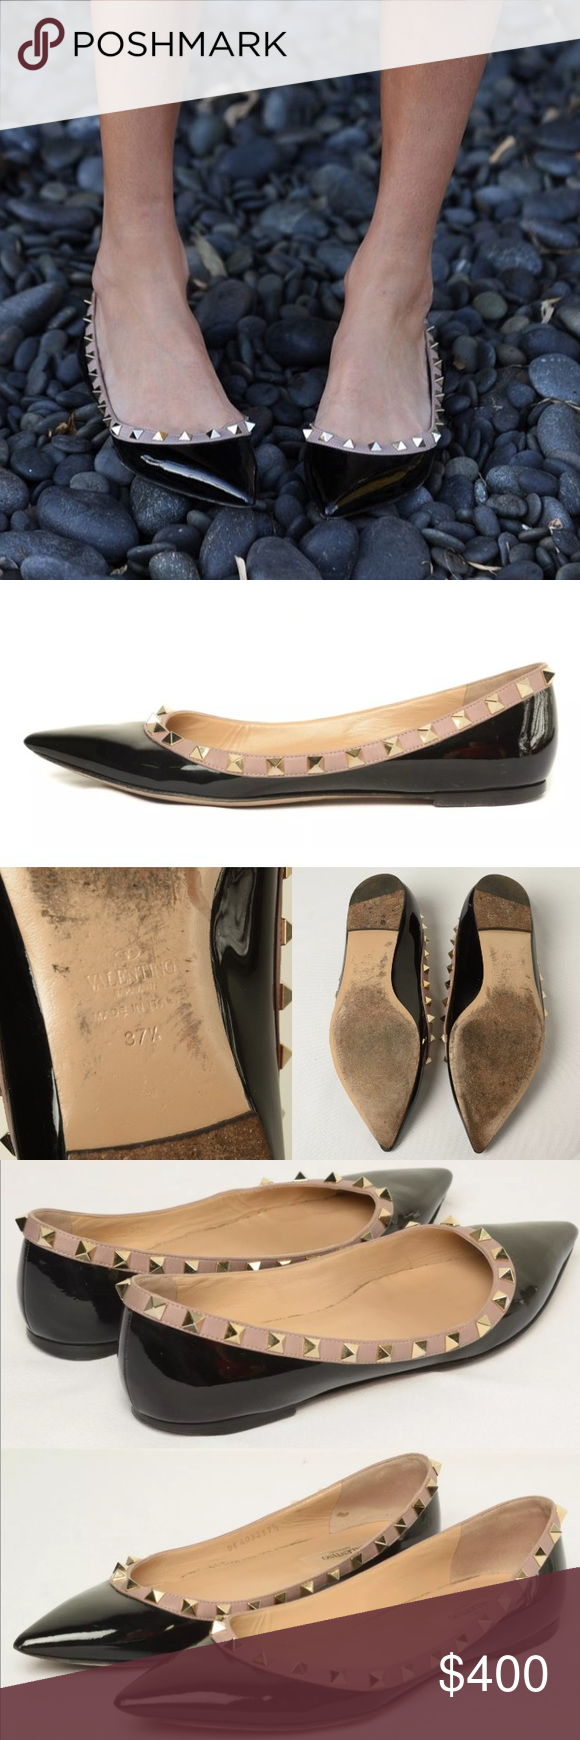 Valentino Black Patent Rockstud Flats Authentic Authentic VALENTINO Patent Rockstud Ballet Flats 37.5. Crafted of glossy black patent leather with a beige leather trim and light gold studs lining the mouth. Pair these shoes with jeans for day, or a flirty dress for a night out. These have been used but are in great condition as you can see :) images show the normal wear, but also the cared for condition! I love my shoes always. Comes with dustbag. On Ⓜ️erc for 320 Valentino Shoes Flats…